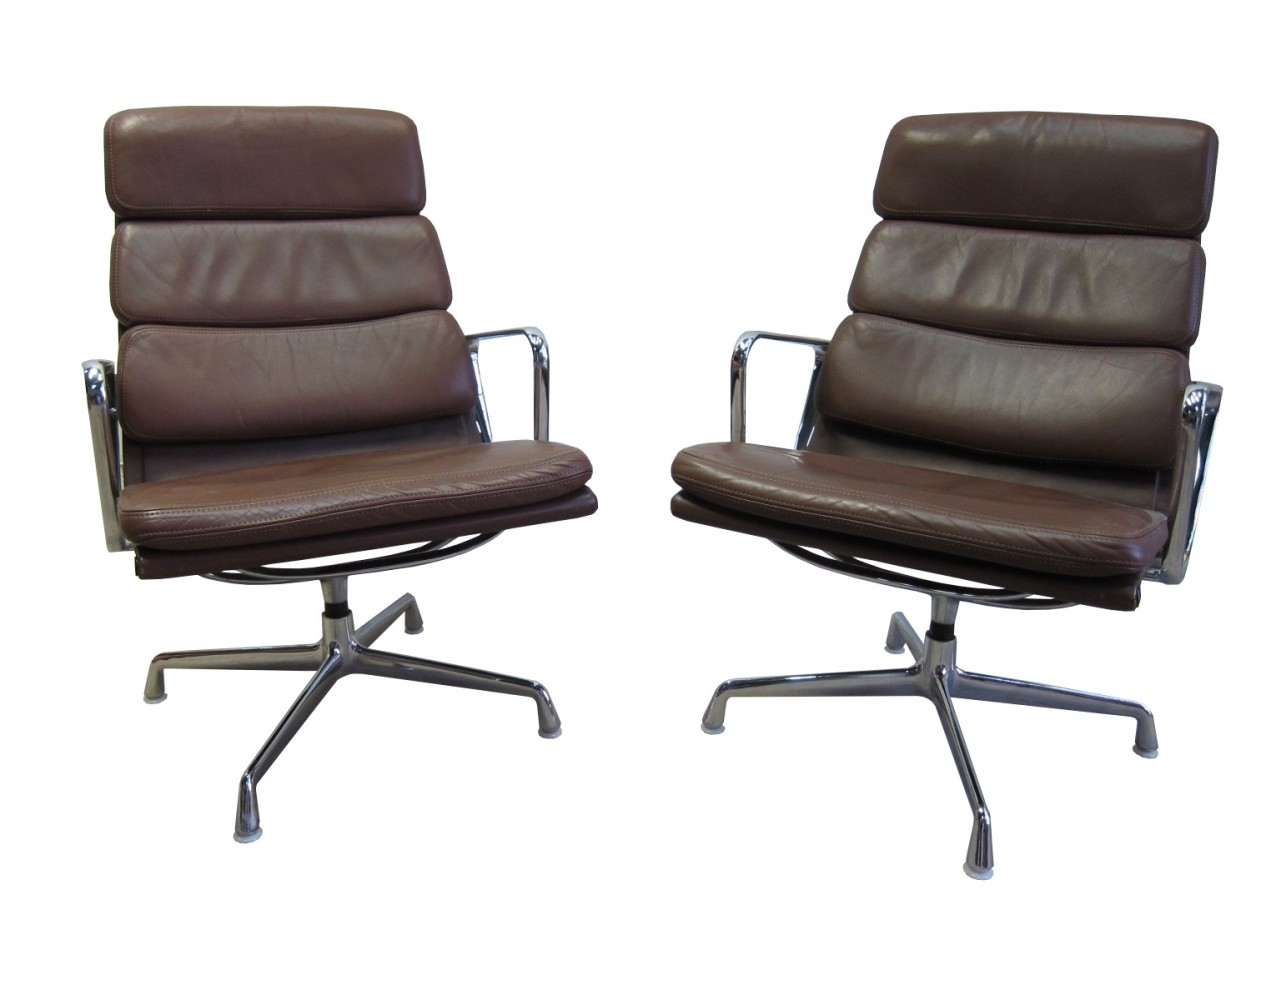 Ea216 softpad lounge chairs by Eames for Herman Miller by Vitra